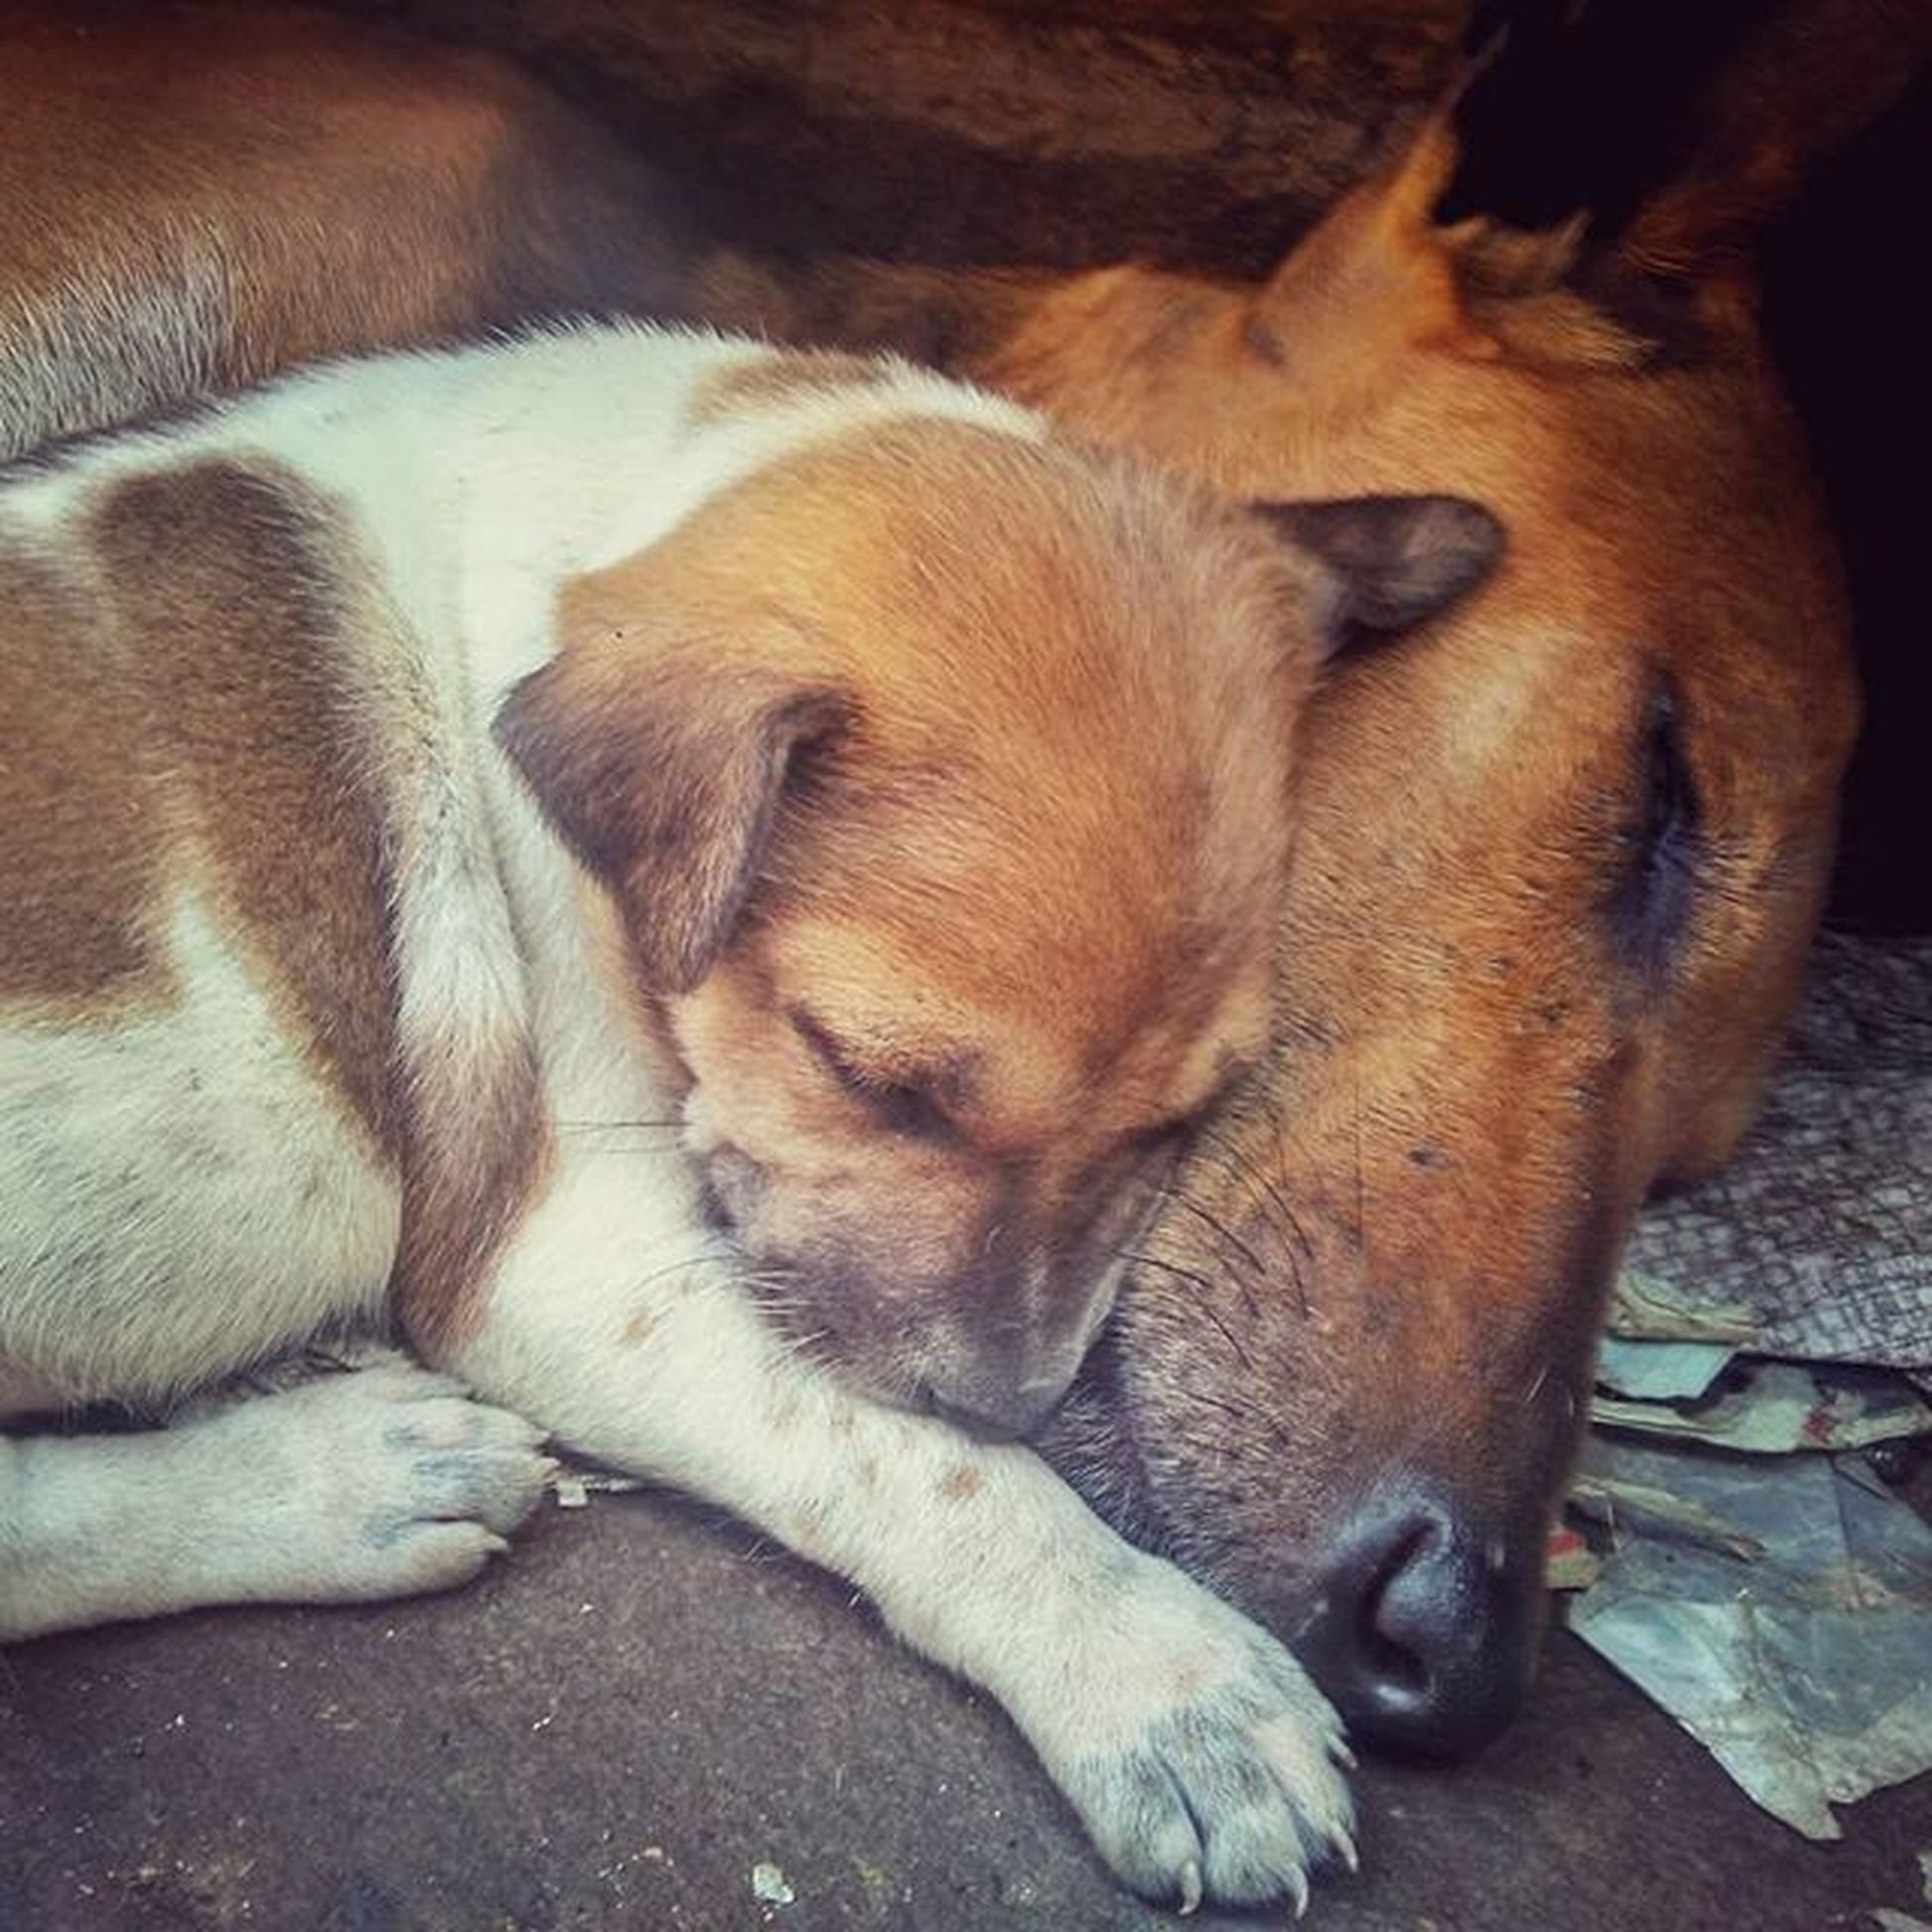 The best pillow in the world... Redmi2Prime Redmi Redmiclicks Puppiesofinstagram Dogsofinstagram PuppyLove _soi Ig_calcutta India Kolkata Incredibleindia Indiapictures Indiaclicks Storiesofindia Lonelyplanetindia Streetsofkolkata Streetphotography Streetsofindia Instagrammers Dailylifeindia Indiadaily Snapseededit Snapseed Desi_diaries Doglovers